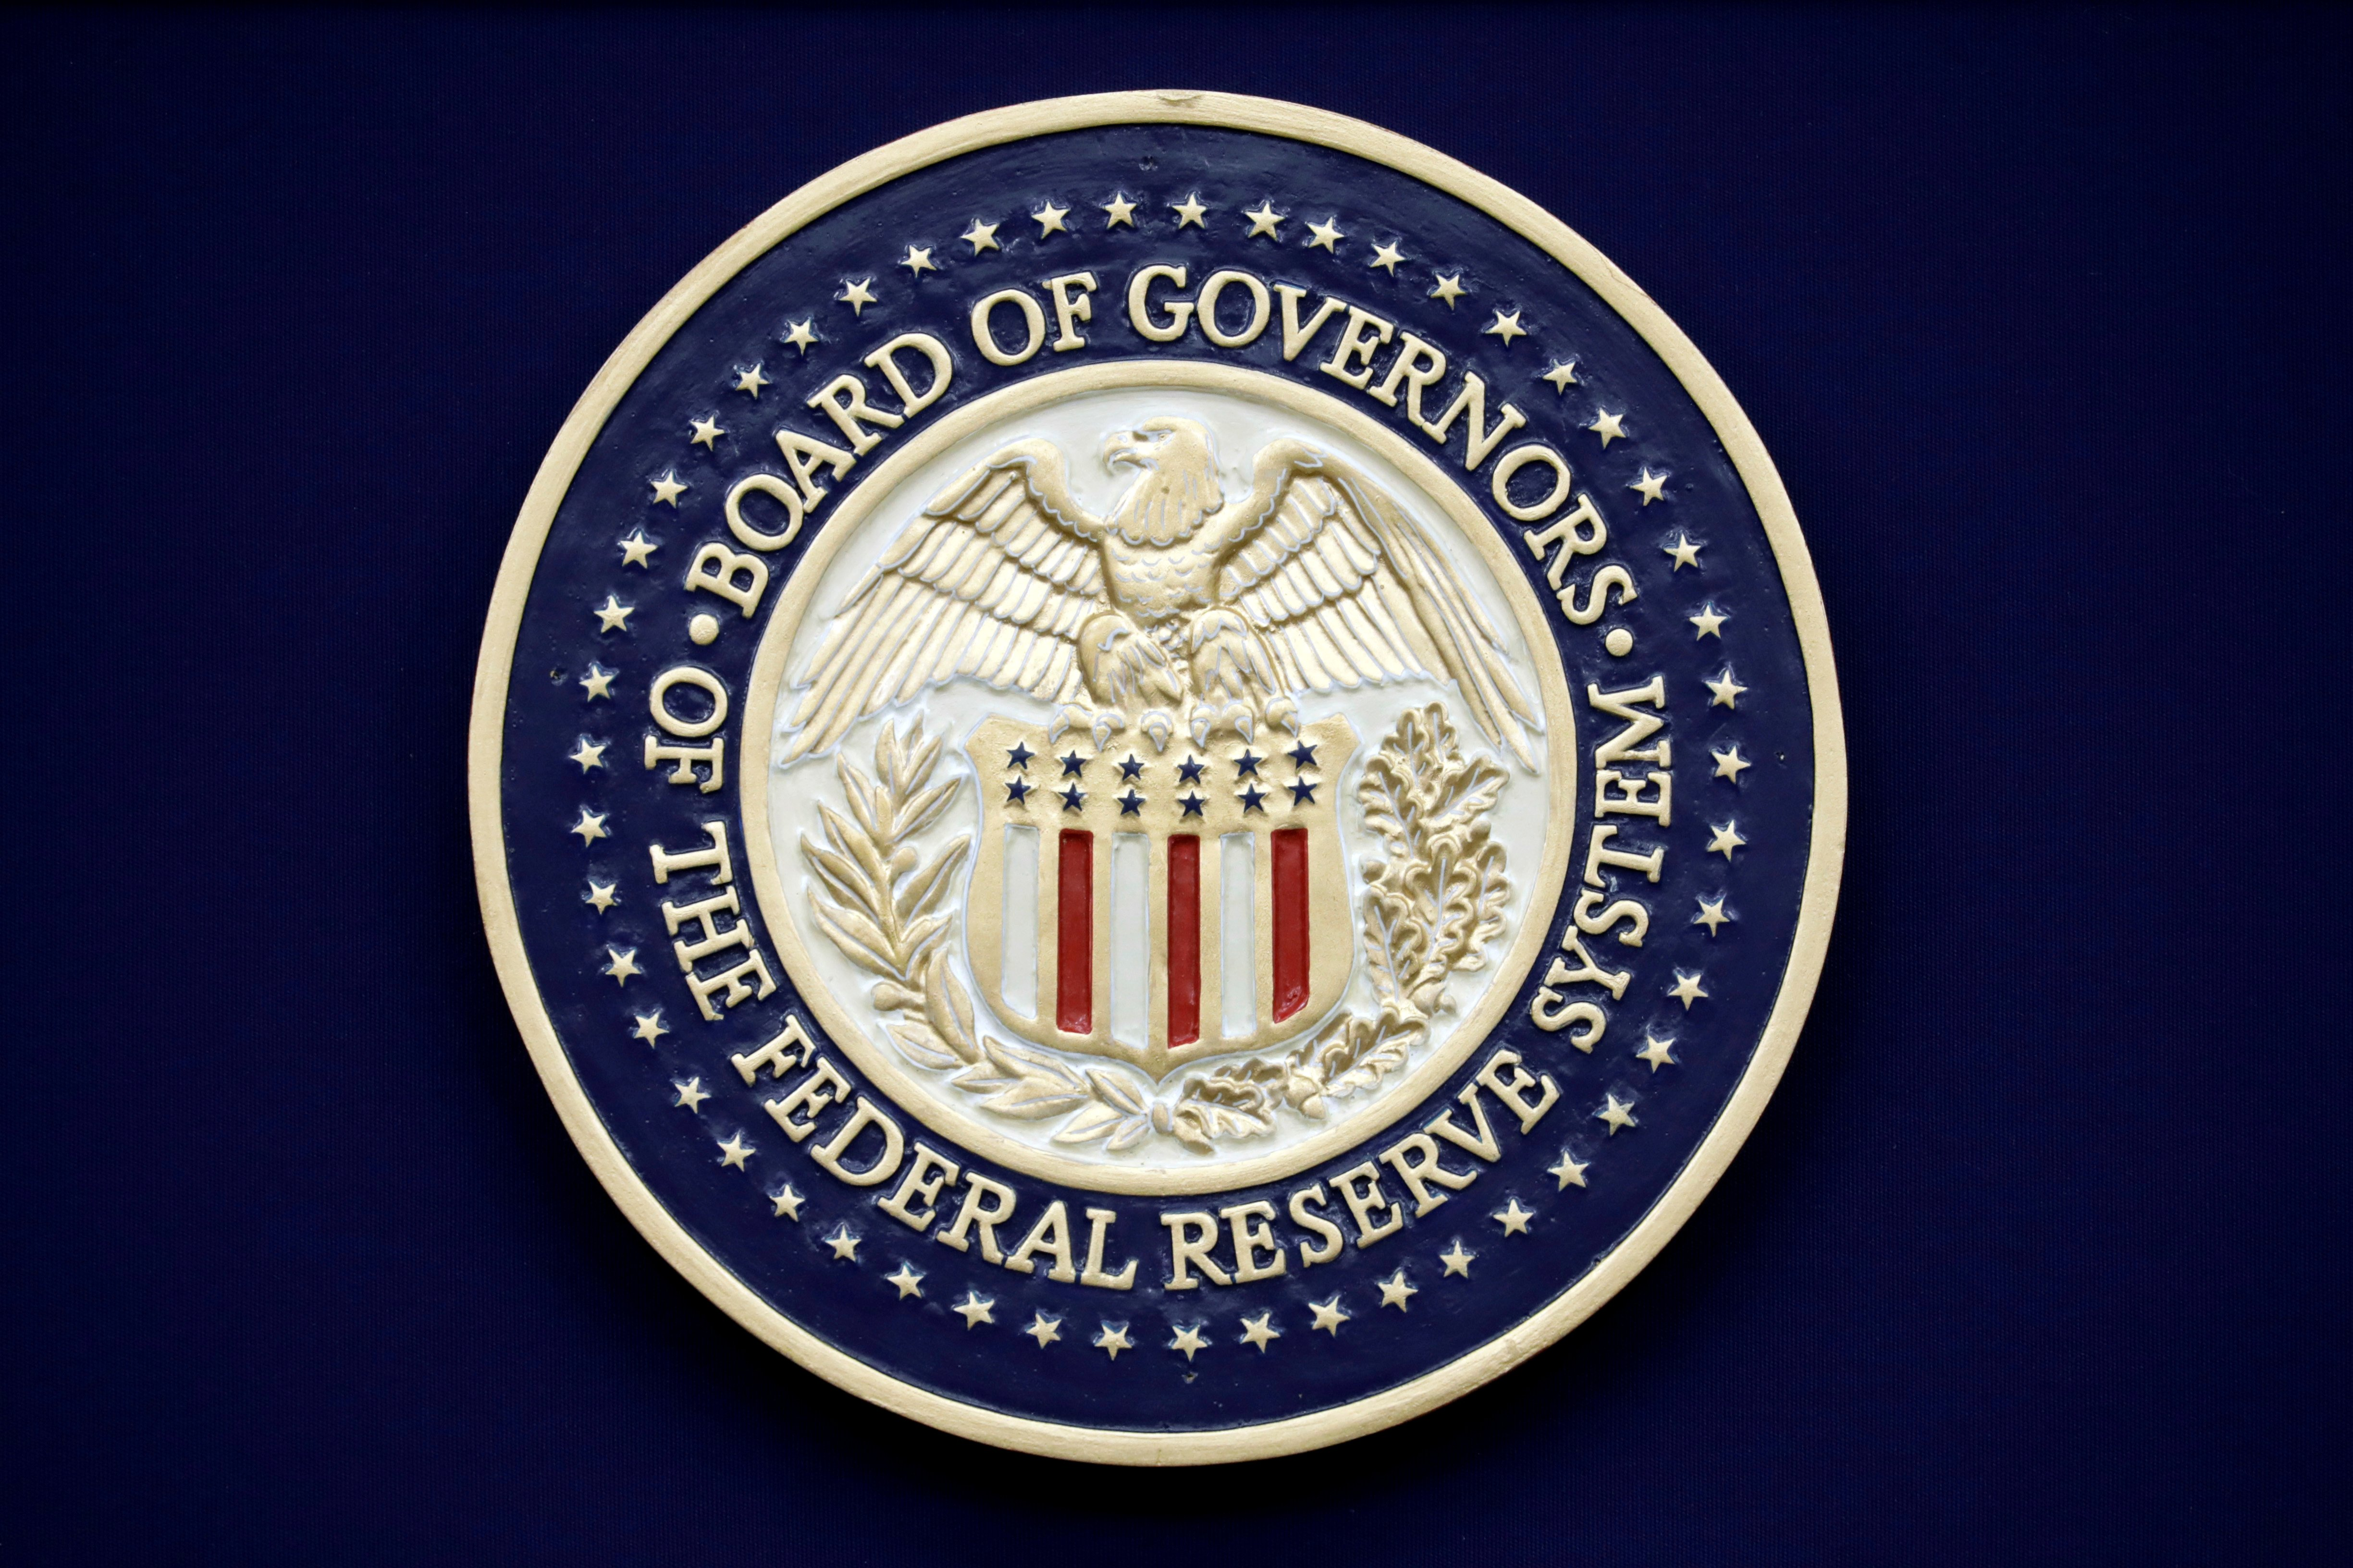 Fed delivers biggest rate cut since 2008 over coronavirus thumbnail